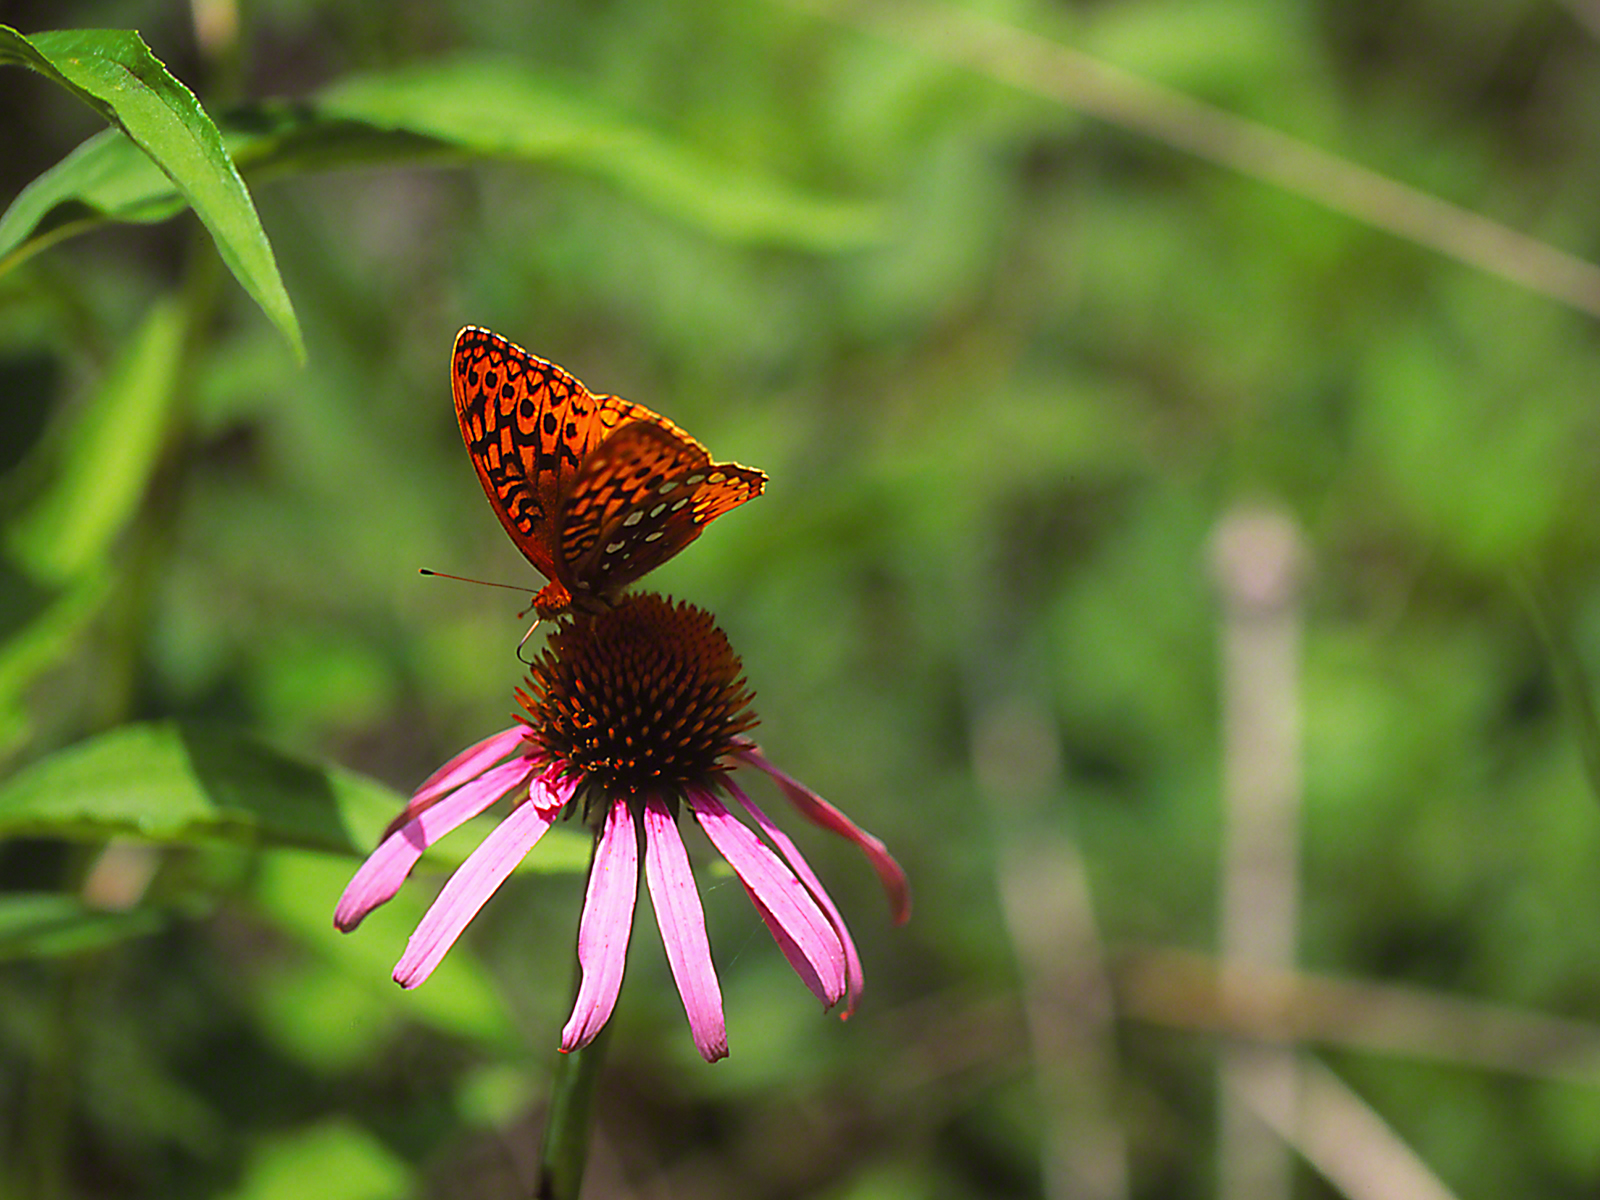 Great Spangle Fritillary Butterfly on Coneflower photographed by Jeff Zablow at Lynx Prairie Reserve, Ohio